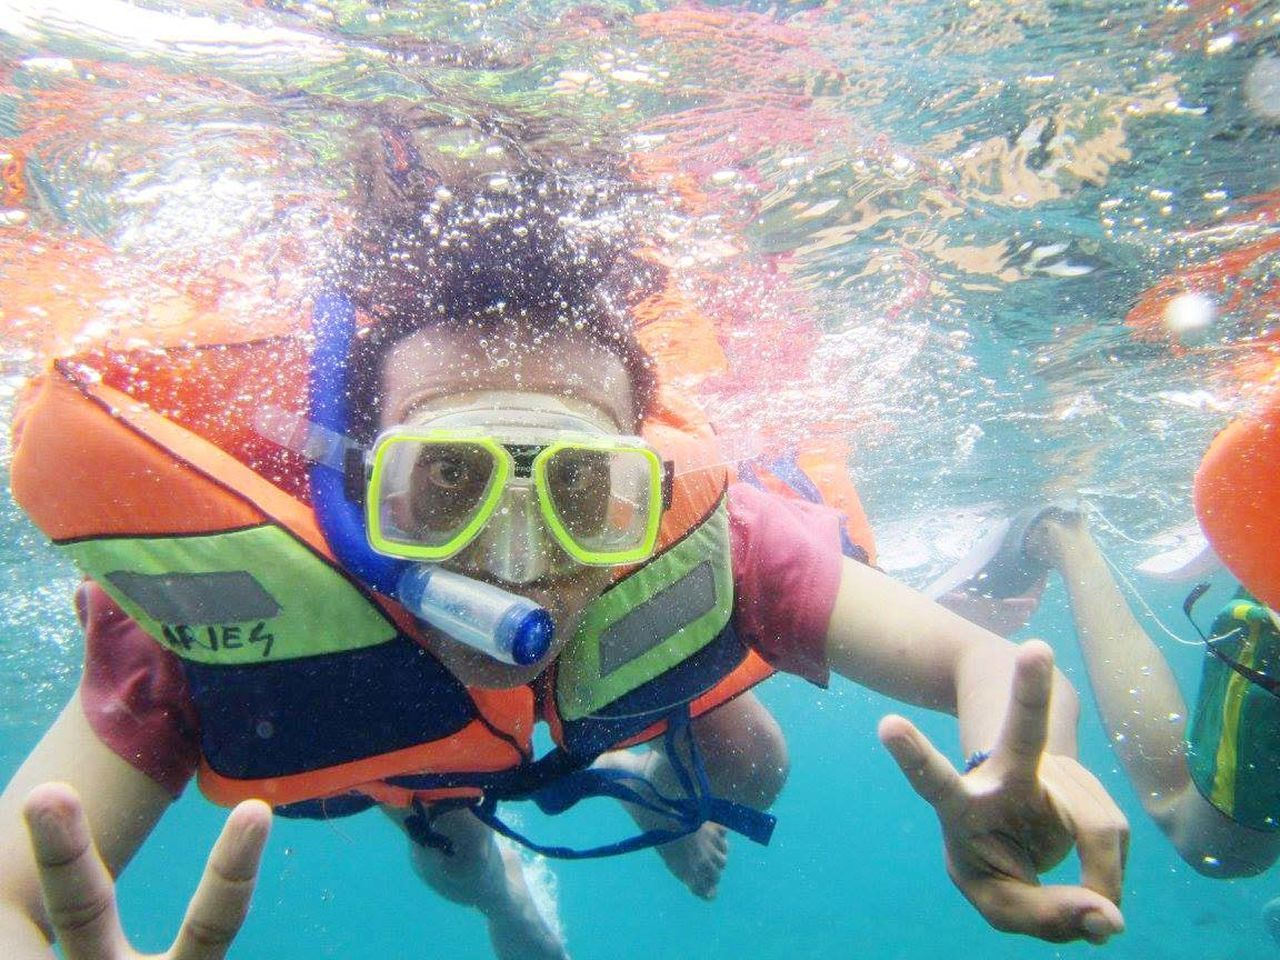 underwater, swimming, water, swimming goggles, vacations, swimming pool, scuba mask, snorkeling, portrait, scuba diving, looking at camera, leisure activity, undersea, people, adventure, one person, outdoors, young adult, close-up, young women, day, adult